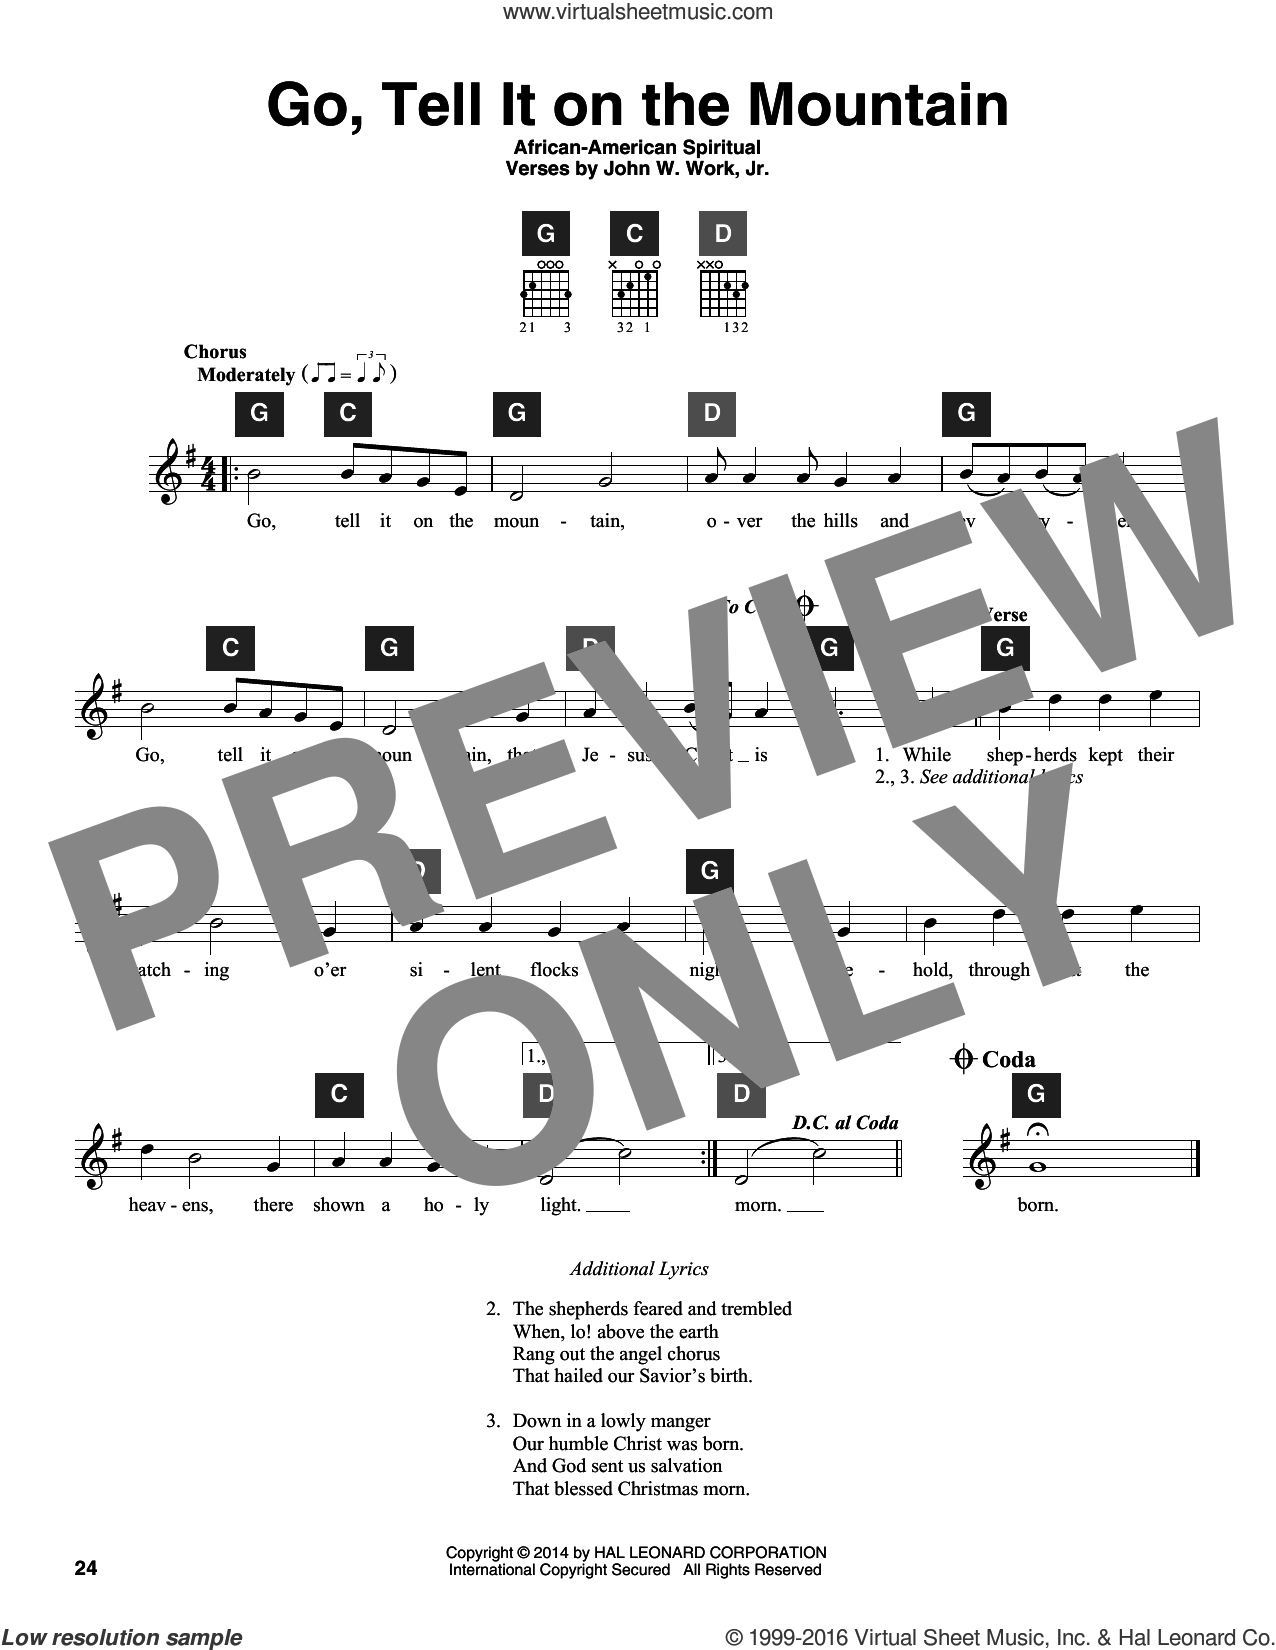 Go, Tell It On The Mountain sheet music for guitar solo (ChordBuddy system) by John W. Work, Jr. and Miscellaneous. Score Image Preview.